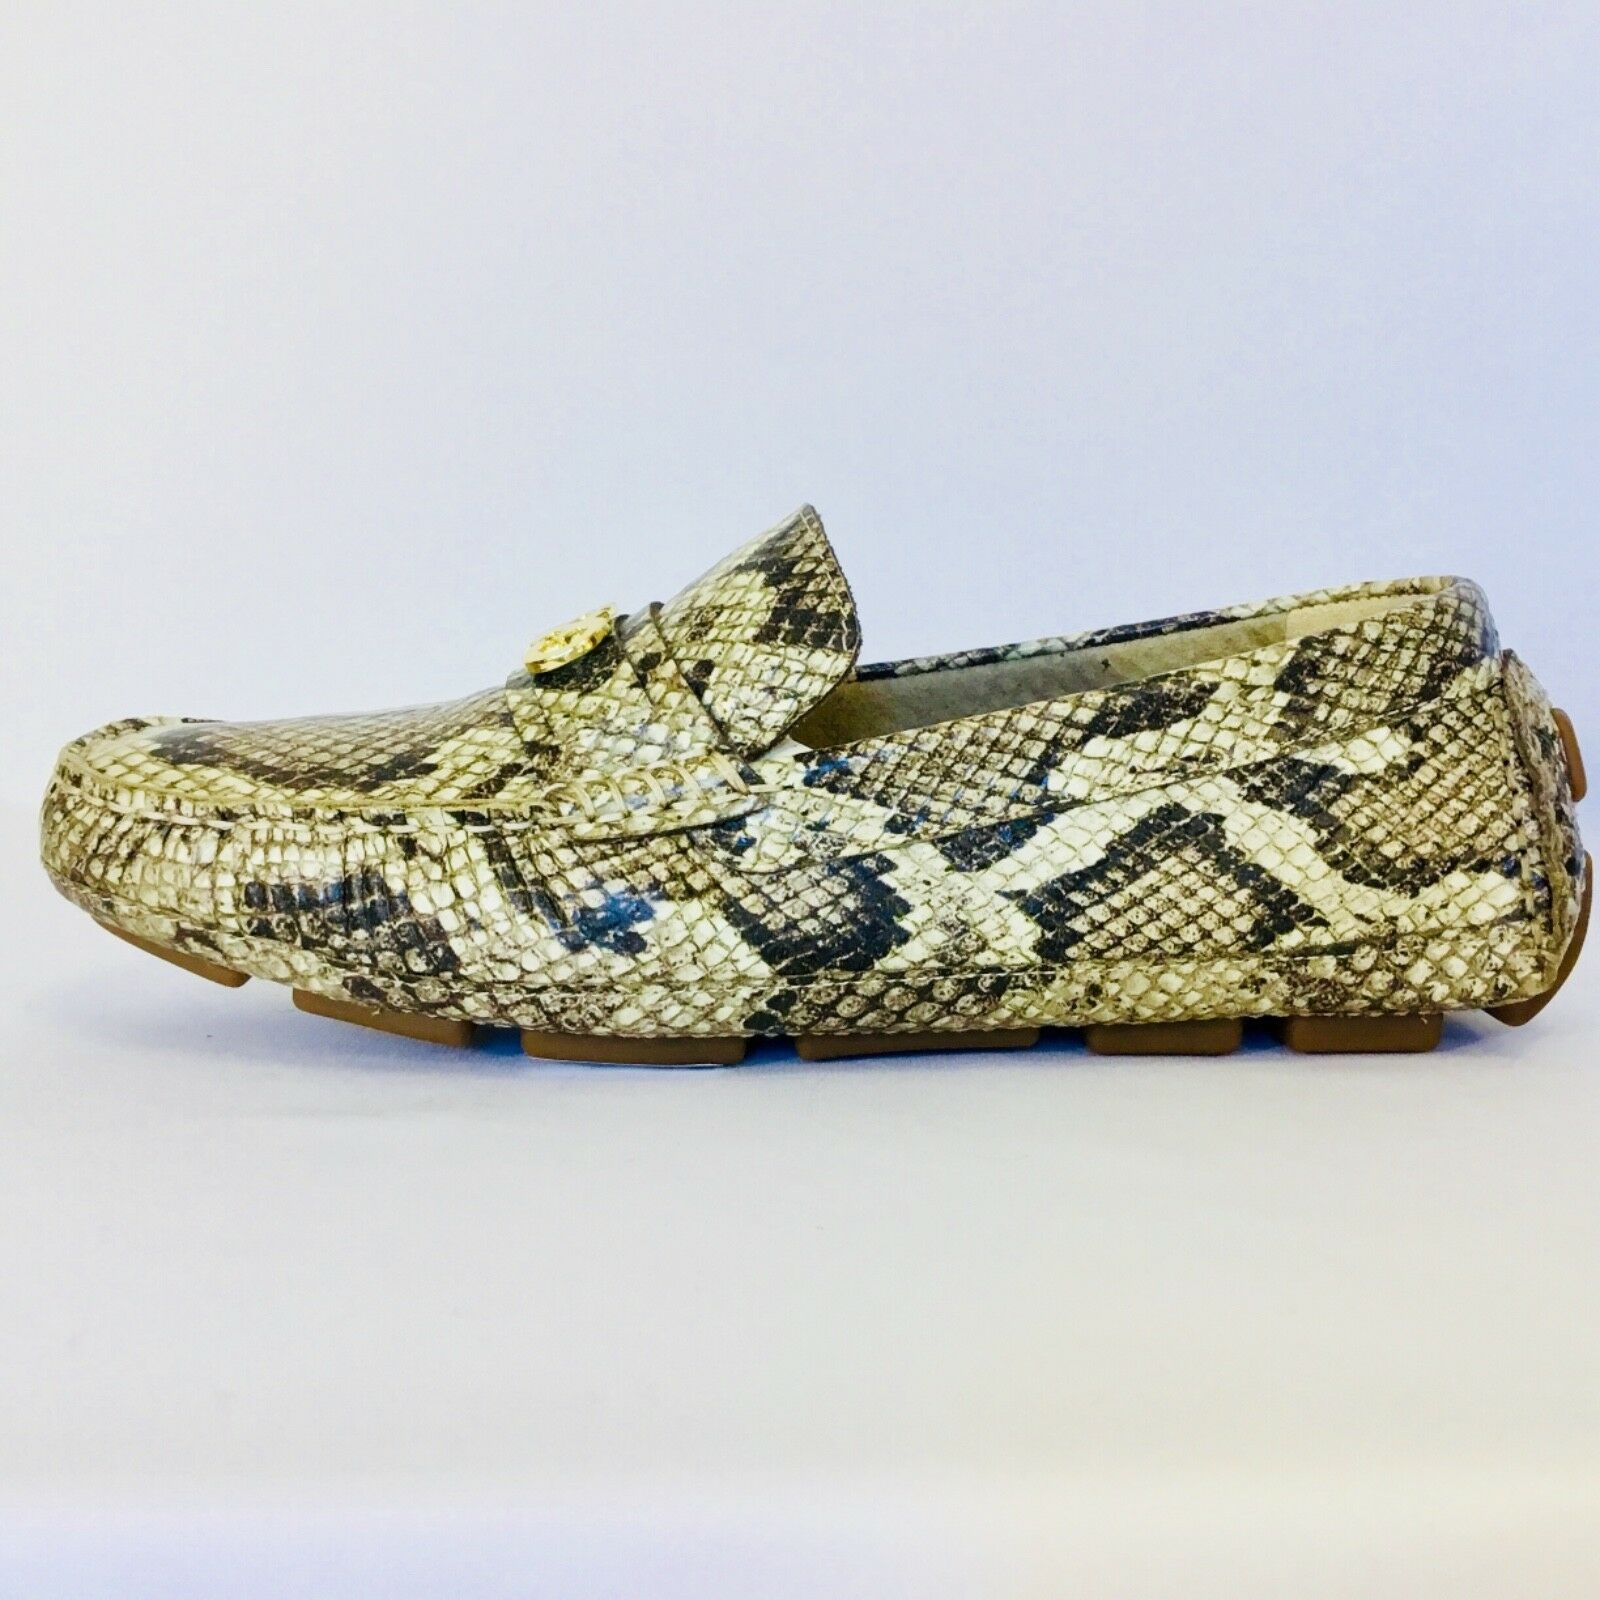 COLE HAAN Snakeskin Driving Loafers, Dimensione 7.5B